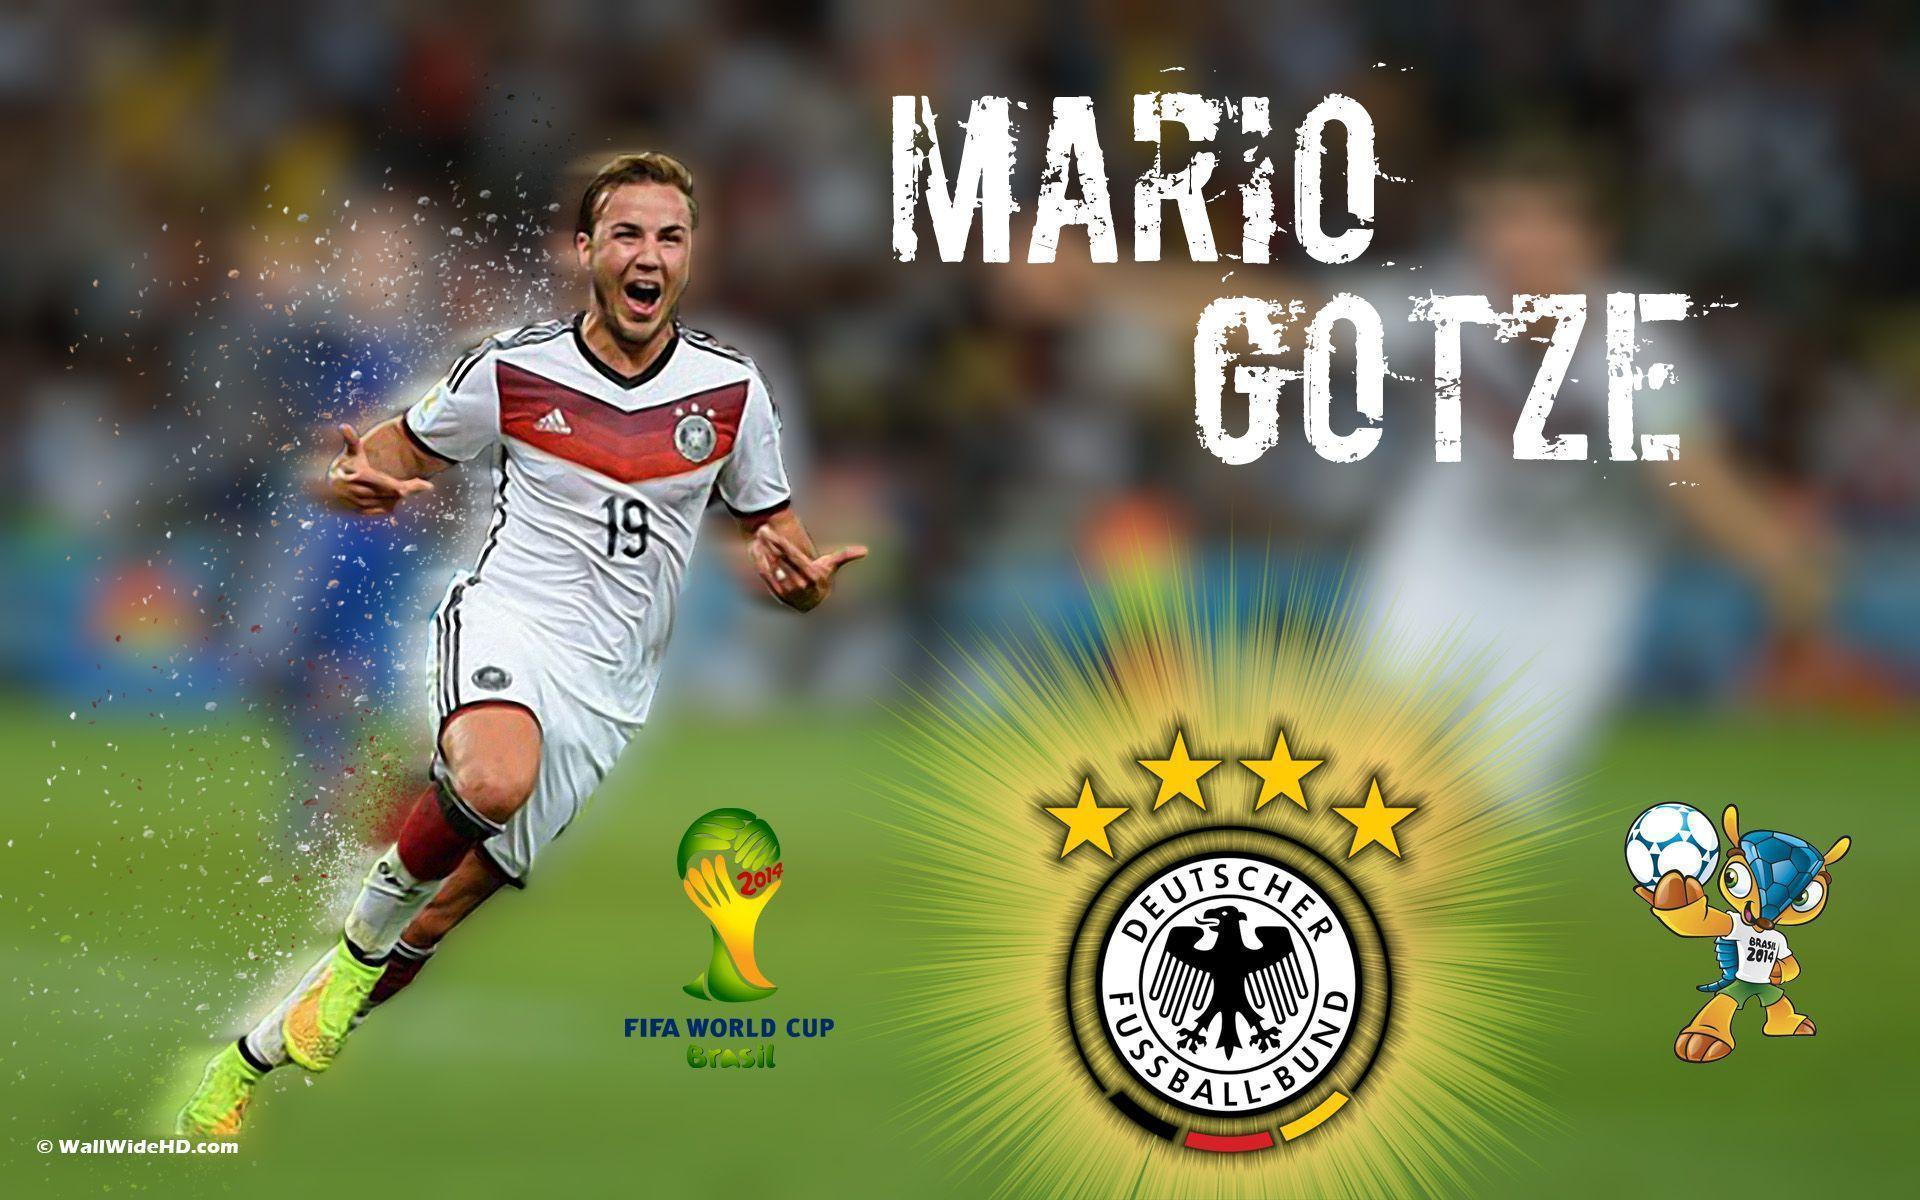 Mario Gotze Wallpapers High Resolution And Quality Download